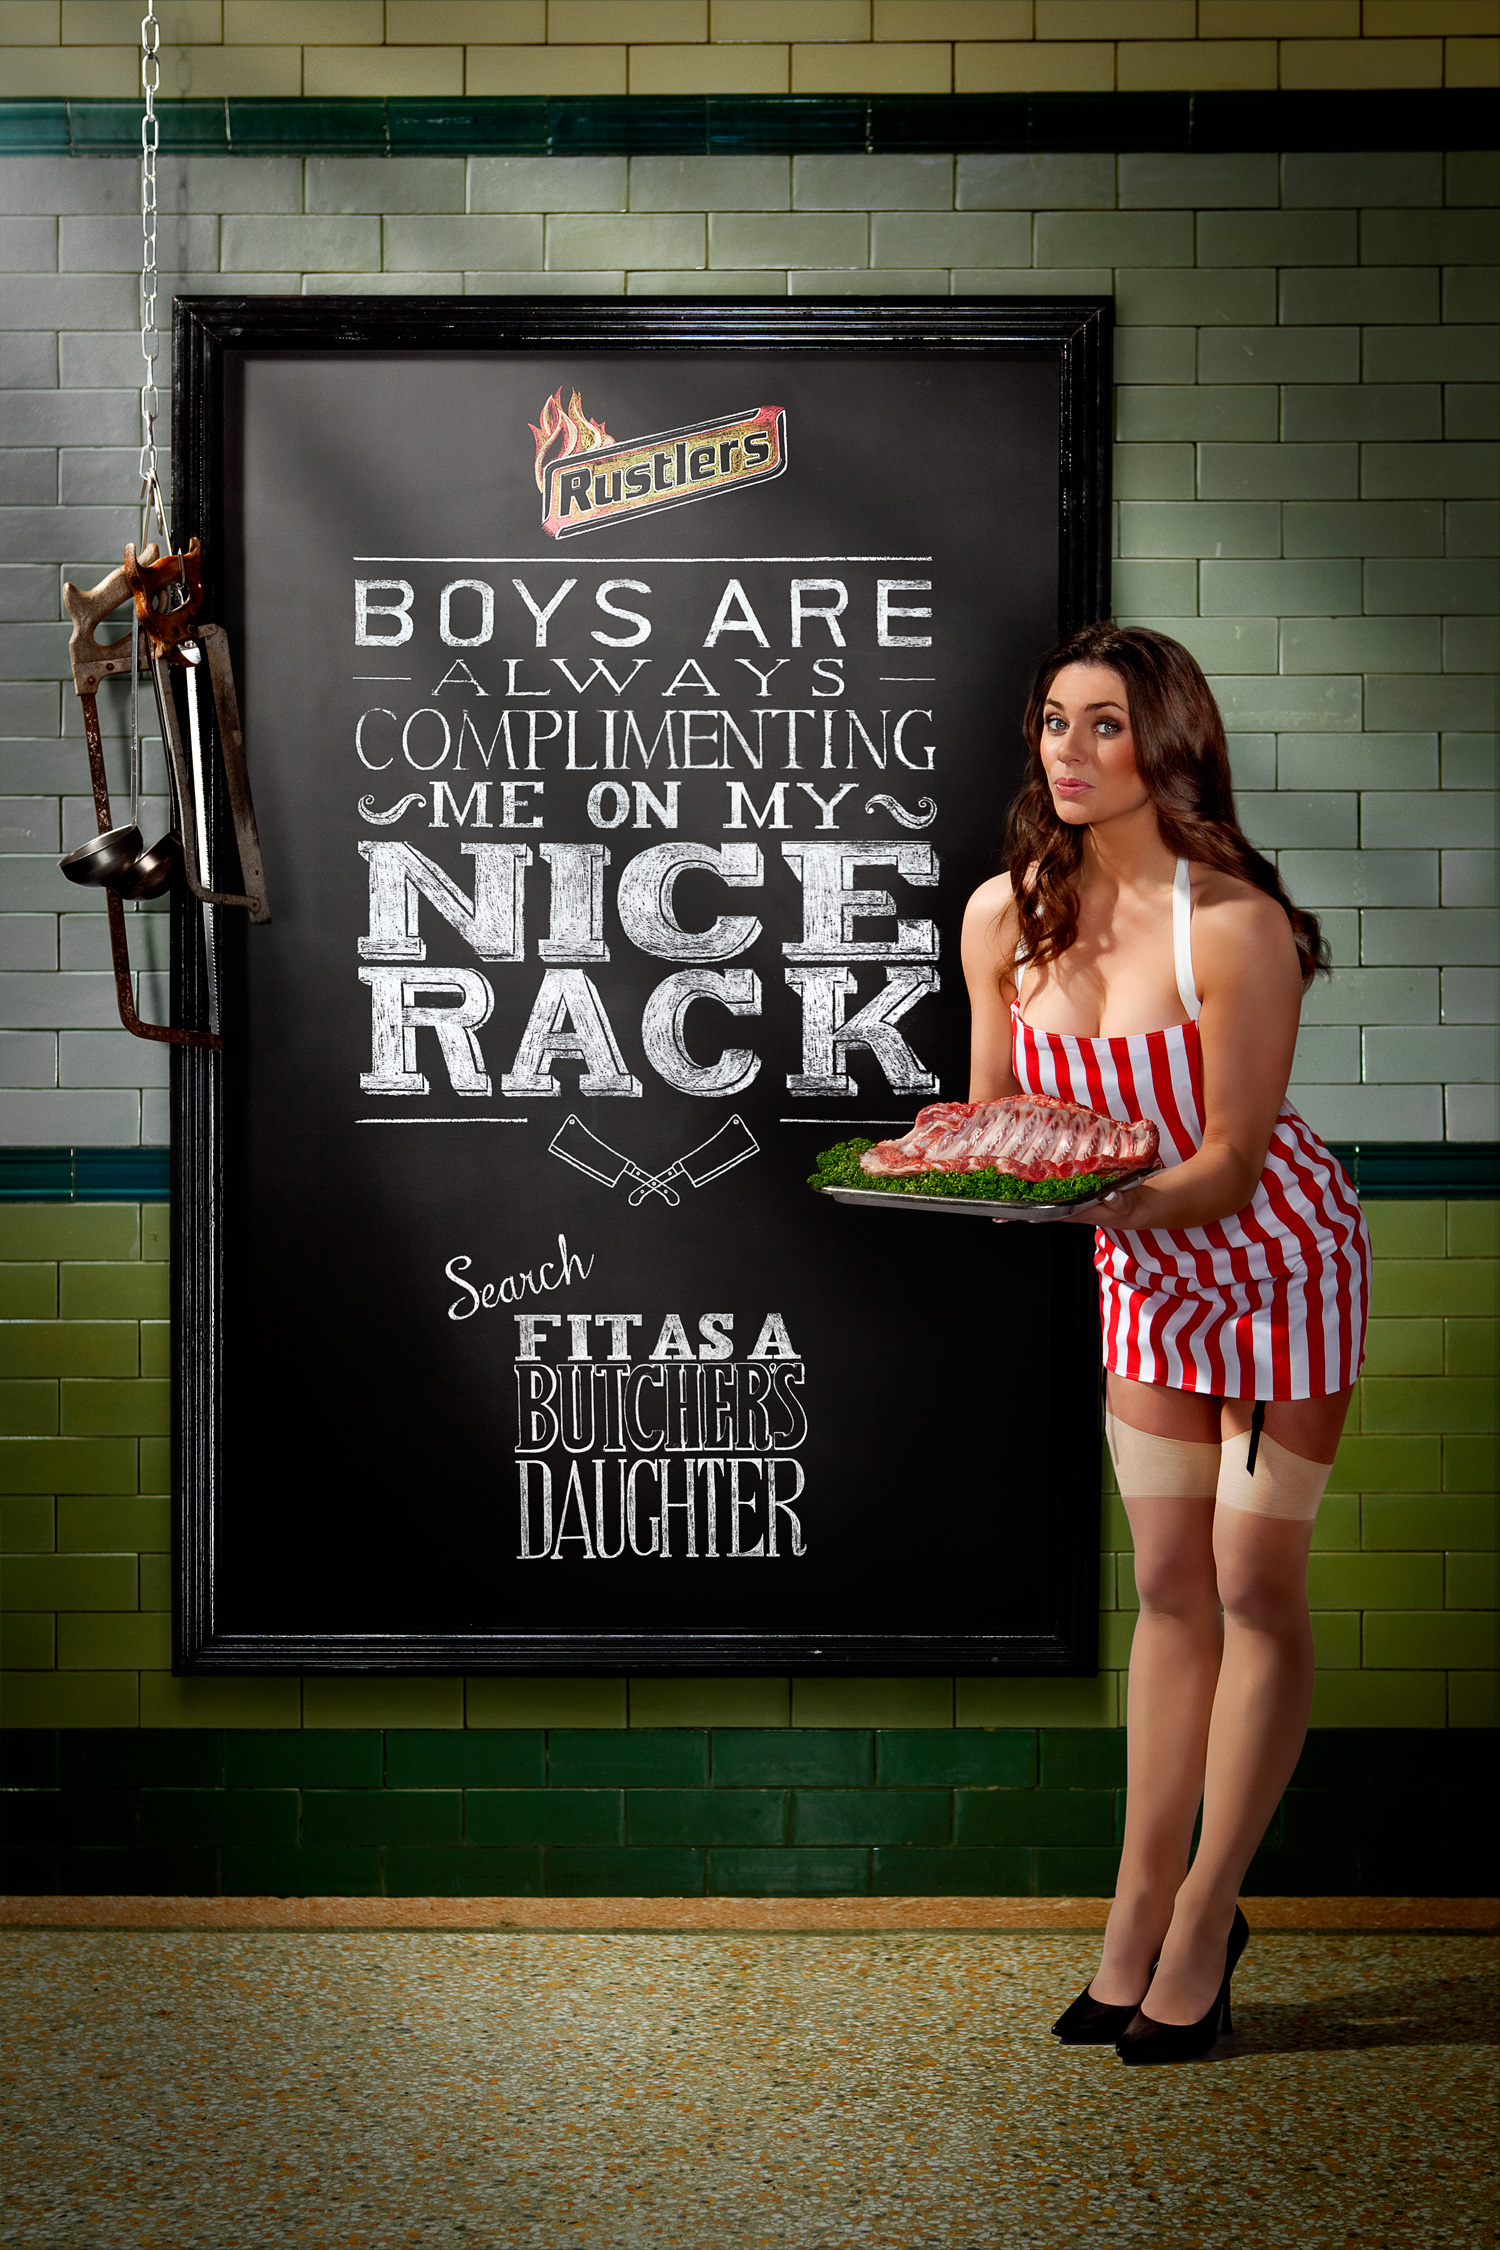 'Fit as a Butcher's Daughter' racy campaign for Rustler's